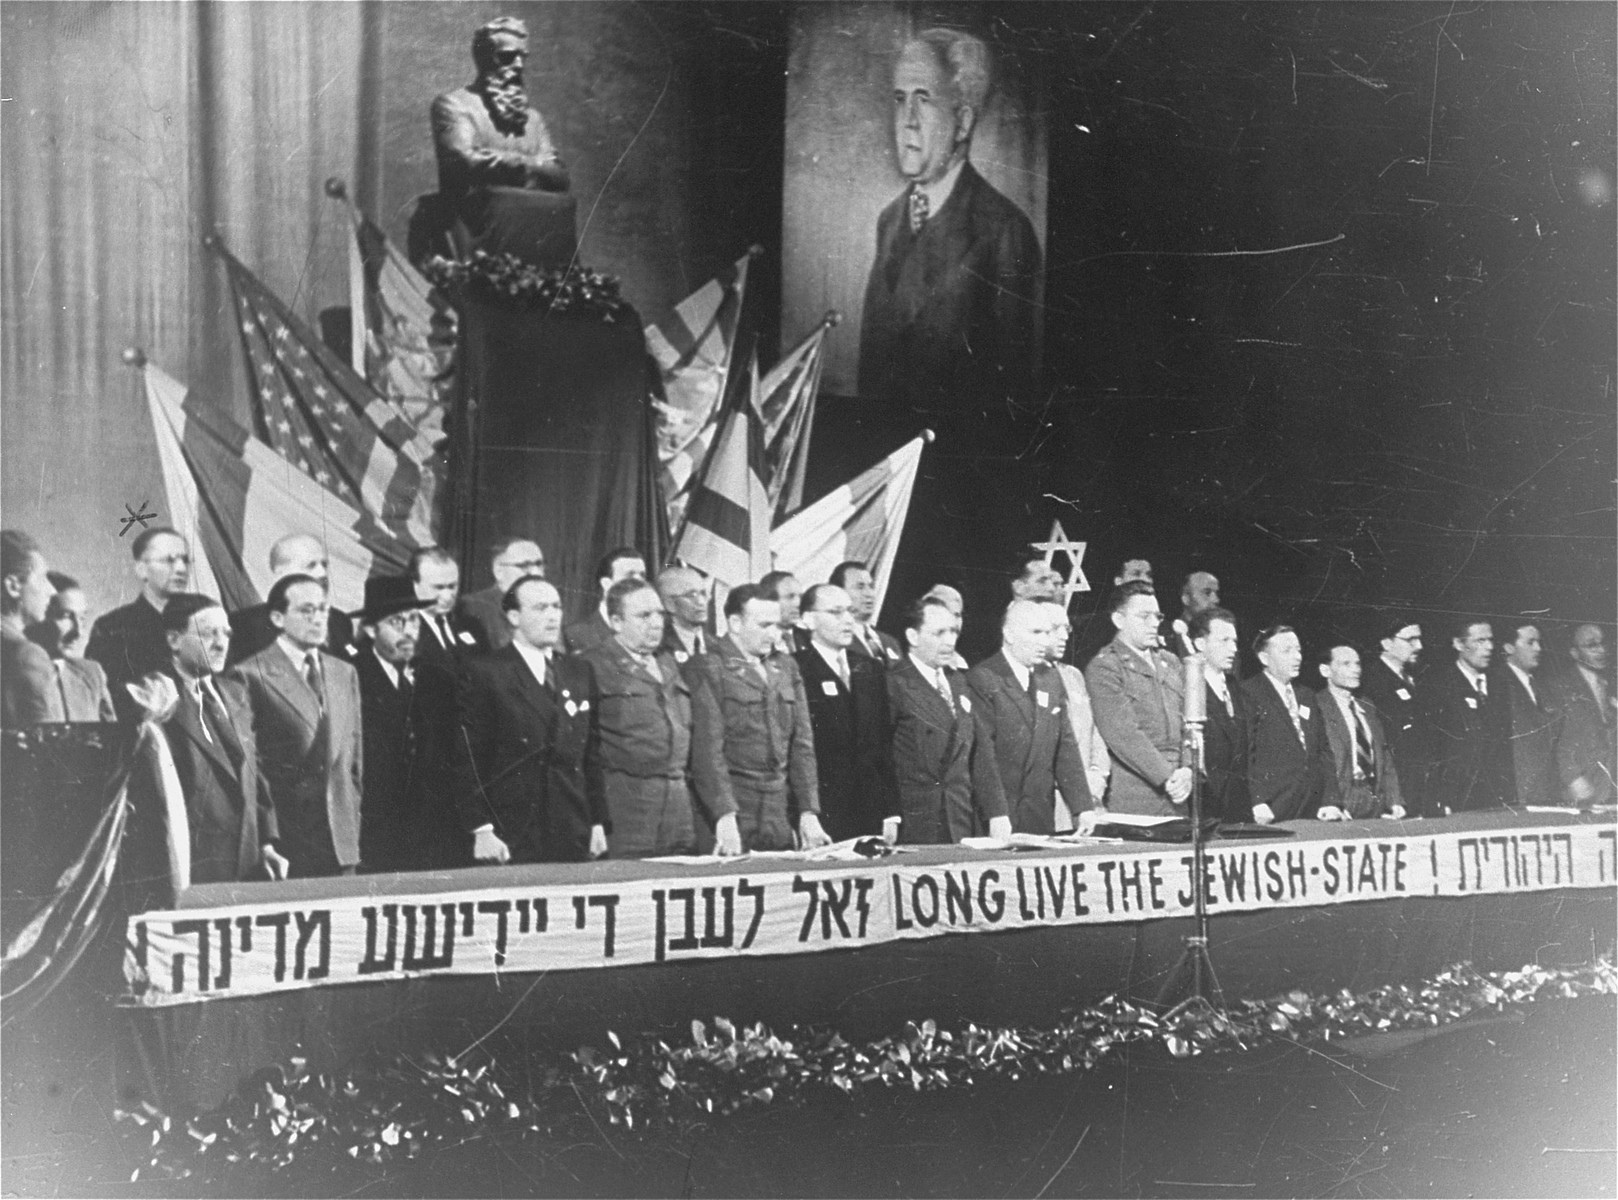 A meeting of the Central Committee of Liberated Jews in the US Zone of Germany celebrating the establishment of the State of Israel.